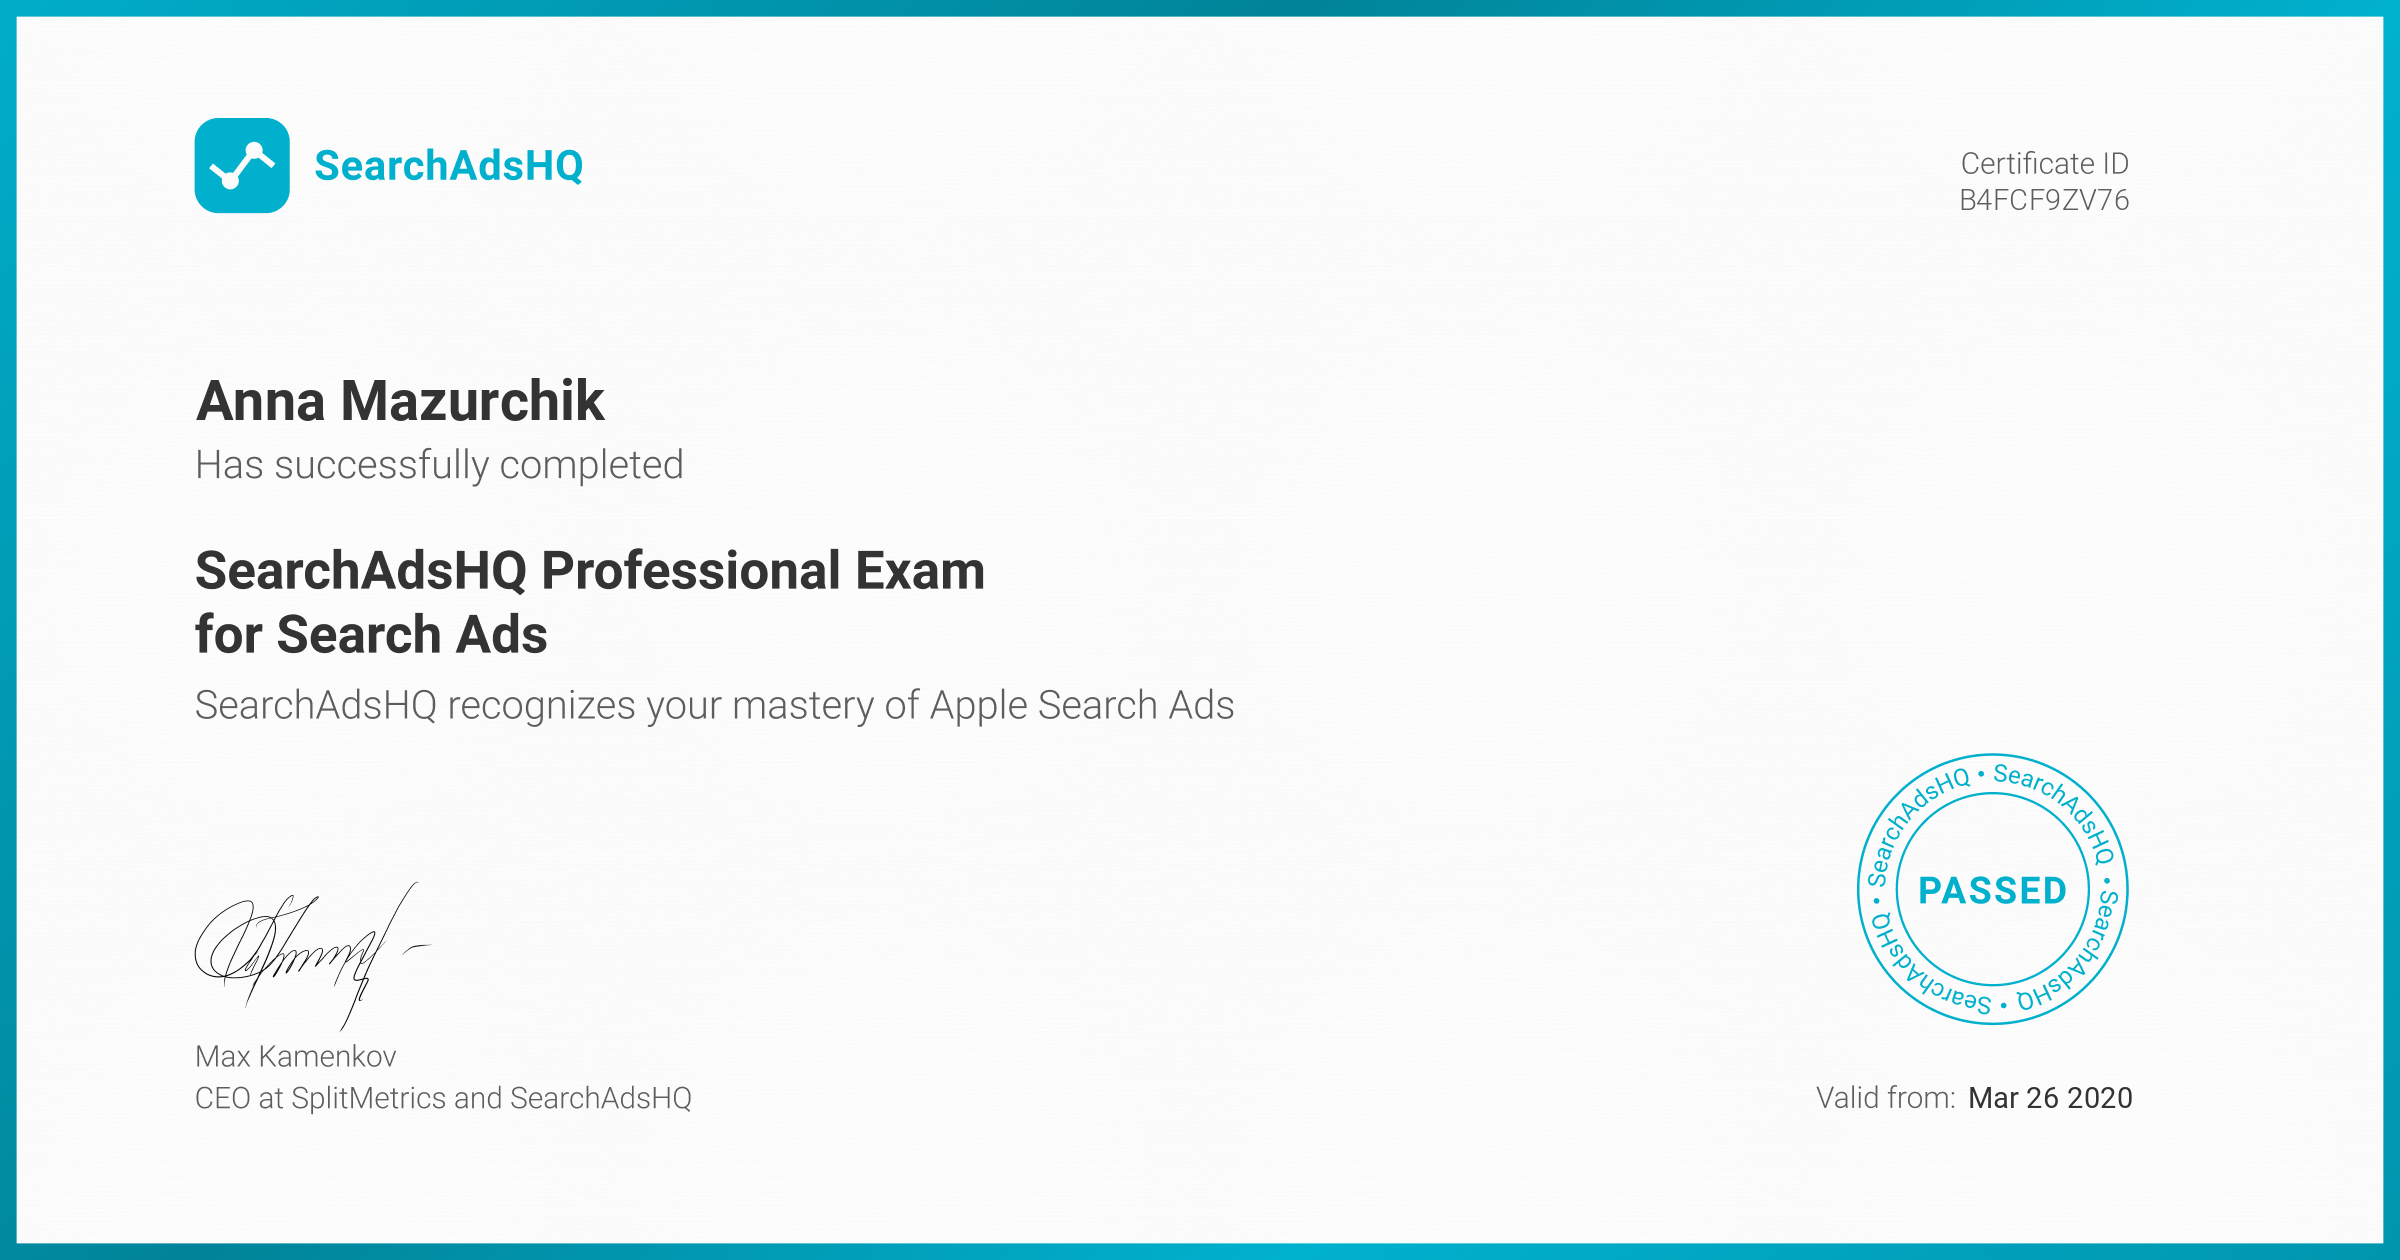 Certificate for Anna Mazurchik | SearchAdsHQ Professional Exam for Search Ads